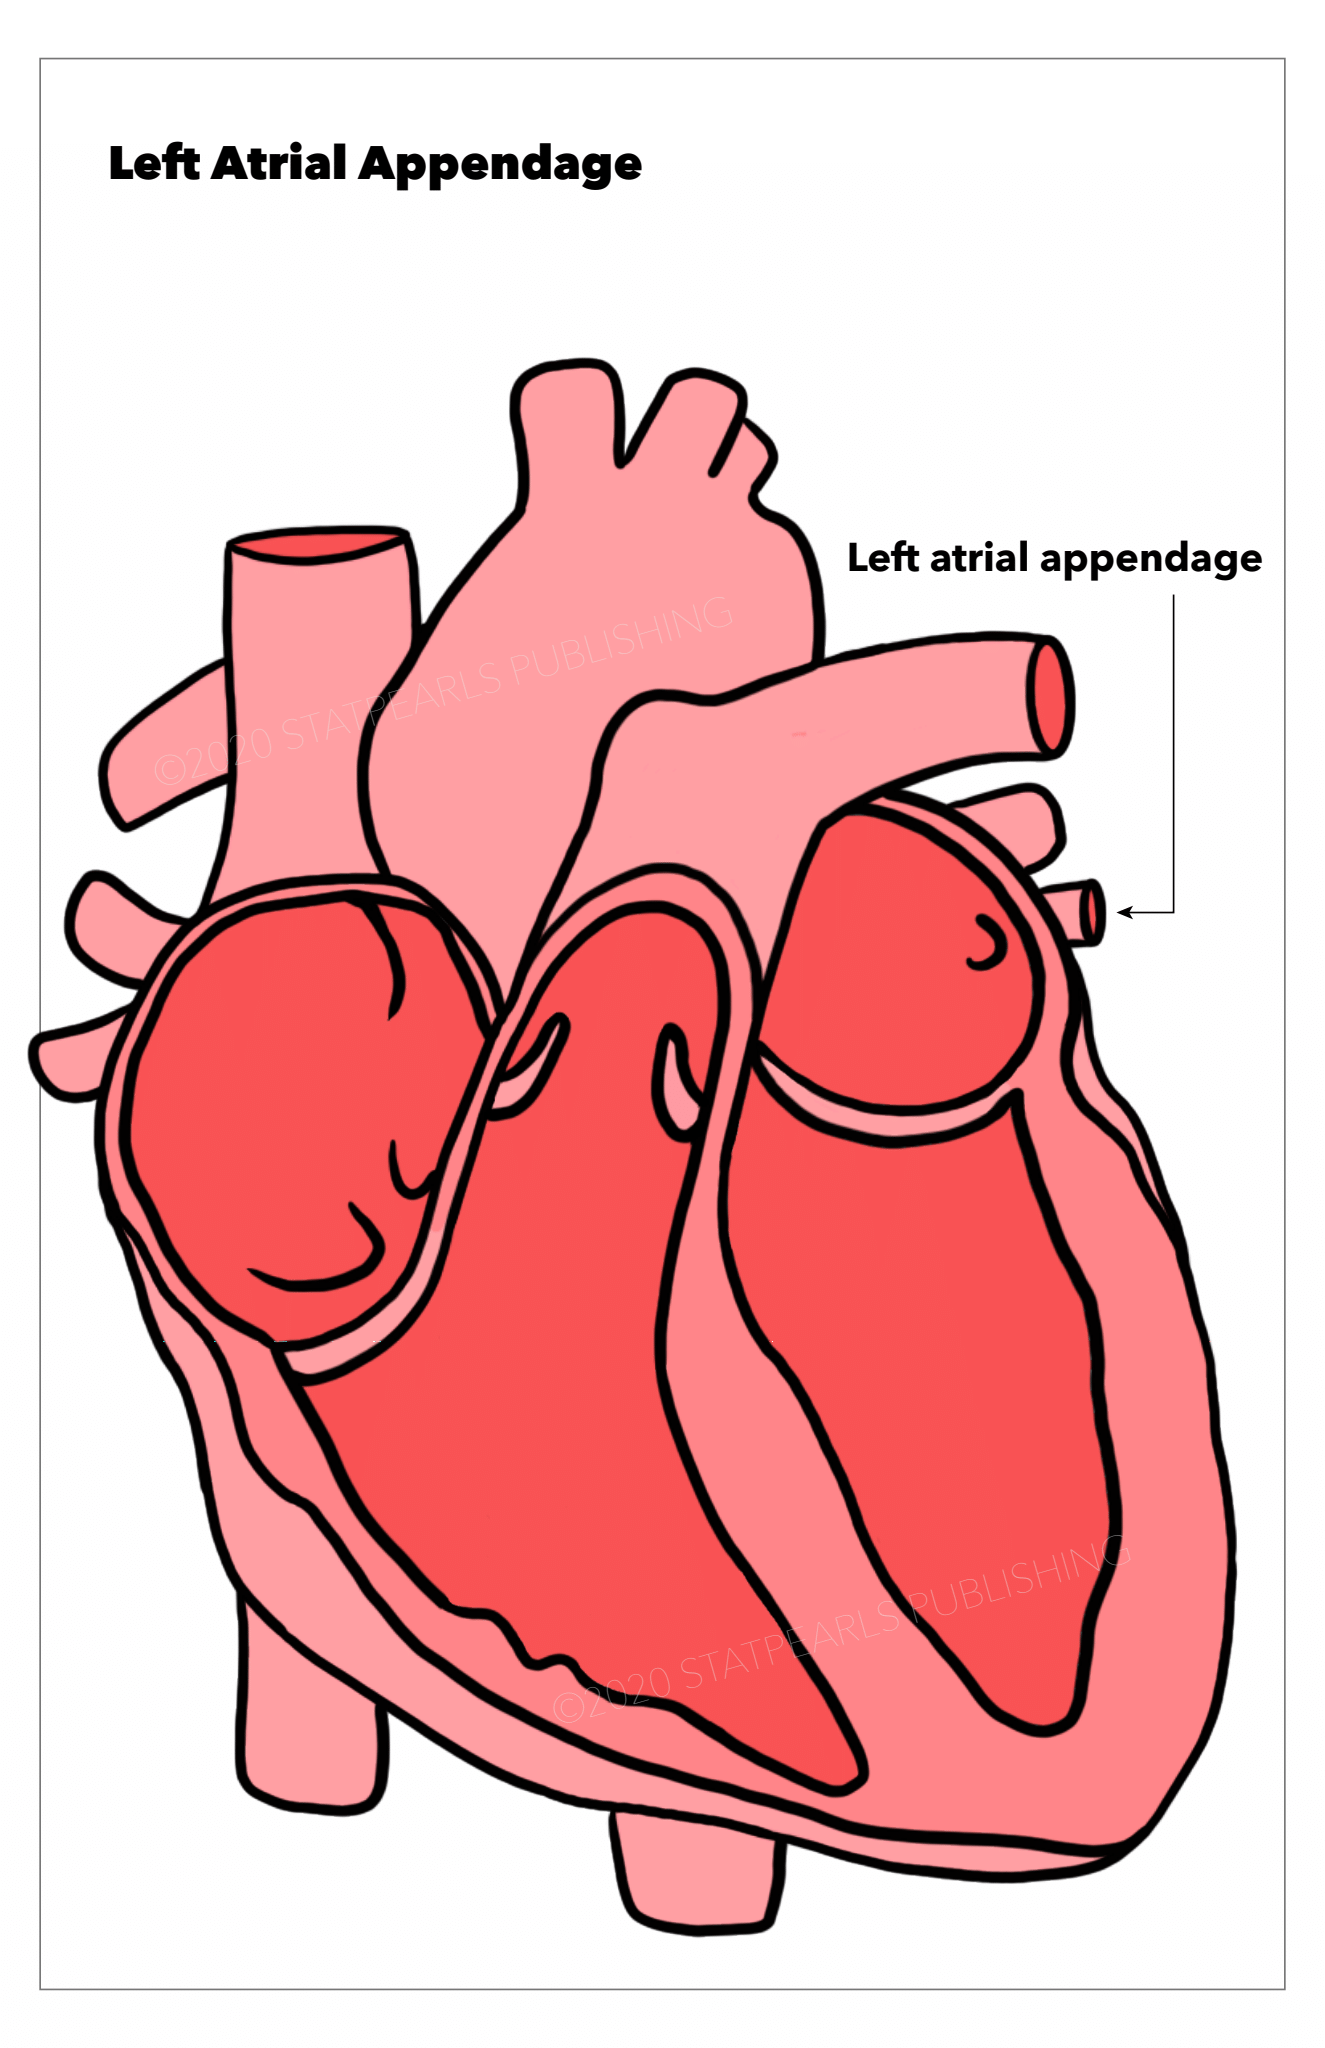 Left atrial appendage, heart